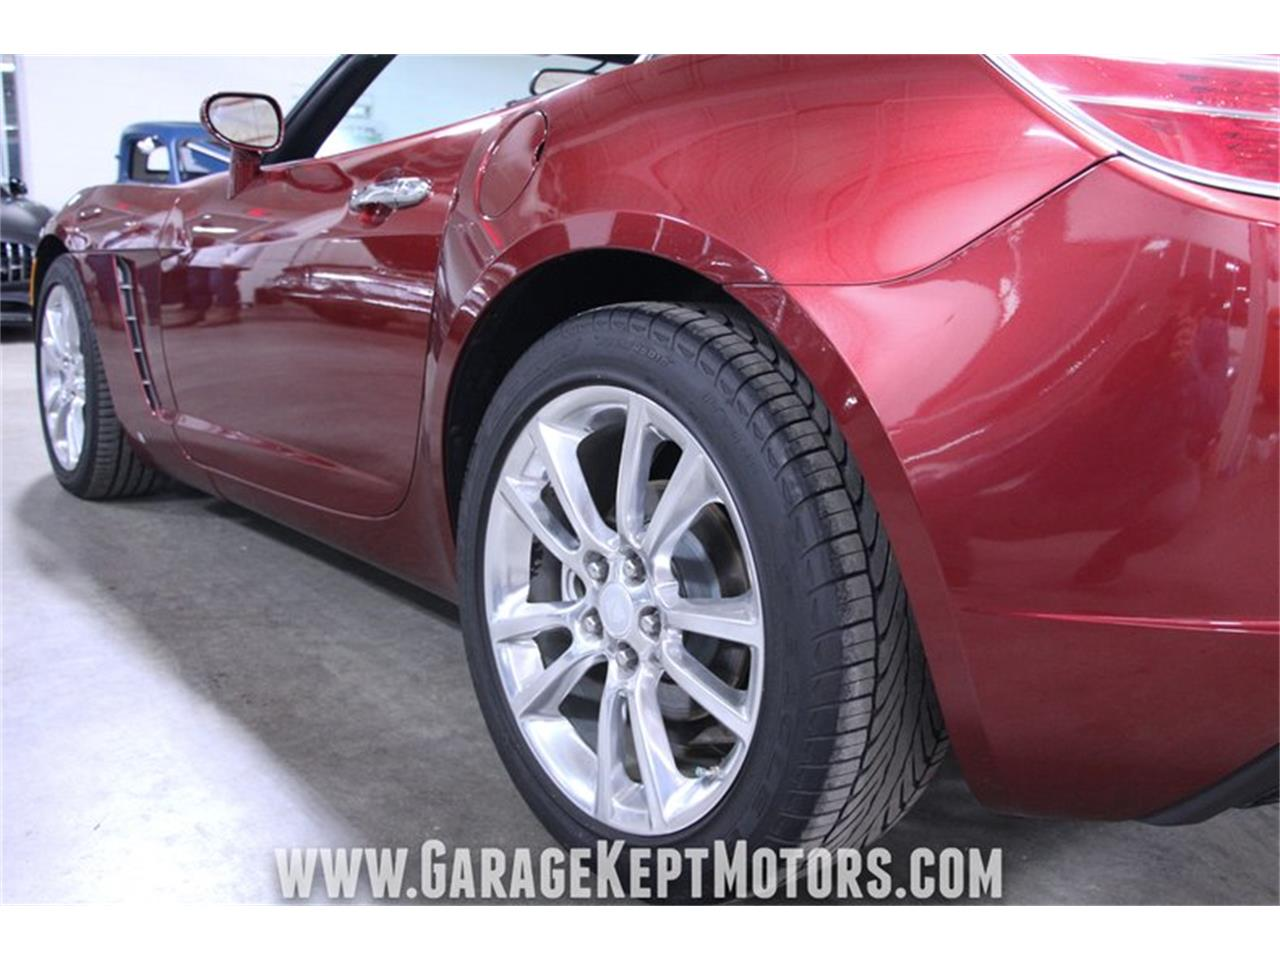 2009 Saturn Sky for sale in Grand Rapids, MI – photo 33